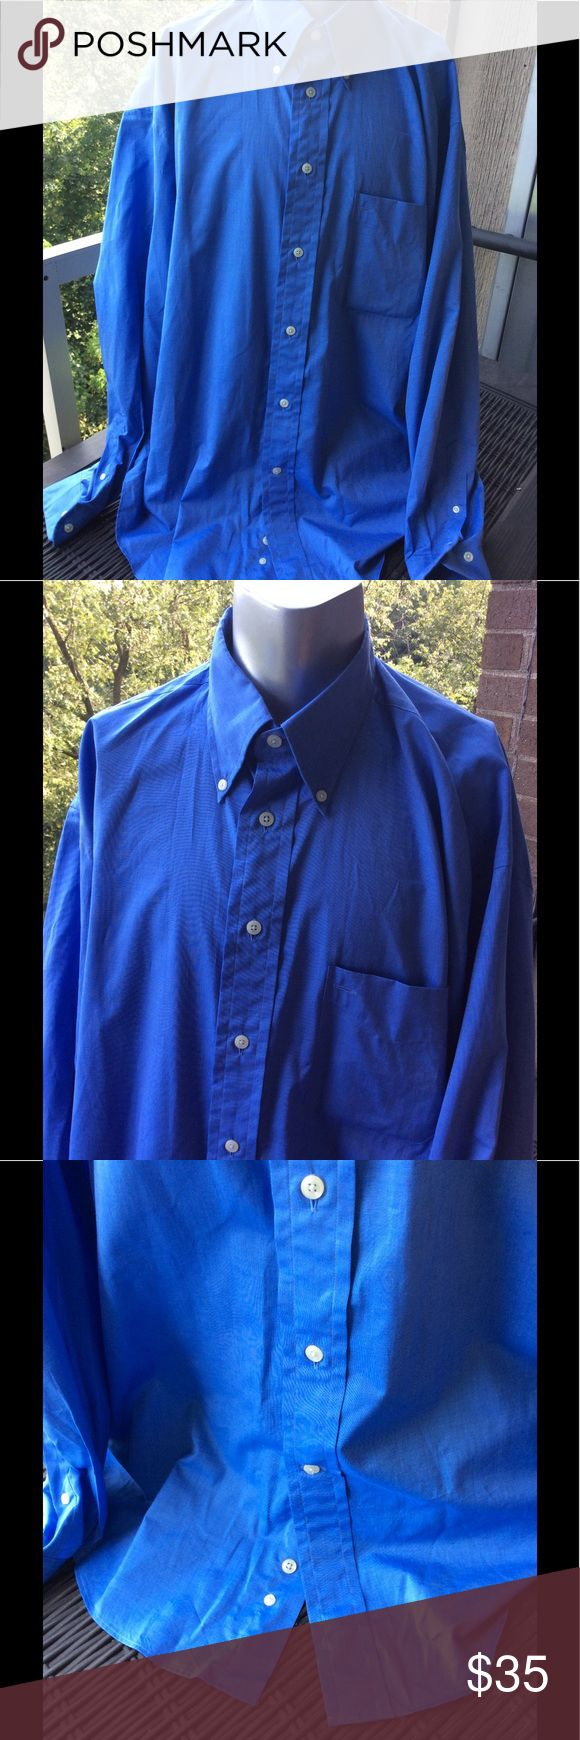 Faconnnable Blue Button Down Shirt XL Faconnable pretty blue collared Button Down shirt. Designed in France, made in the U. S.A. Size XL 💯 % Cotton Faconnable Shirts Dress Shirts